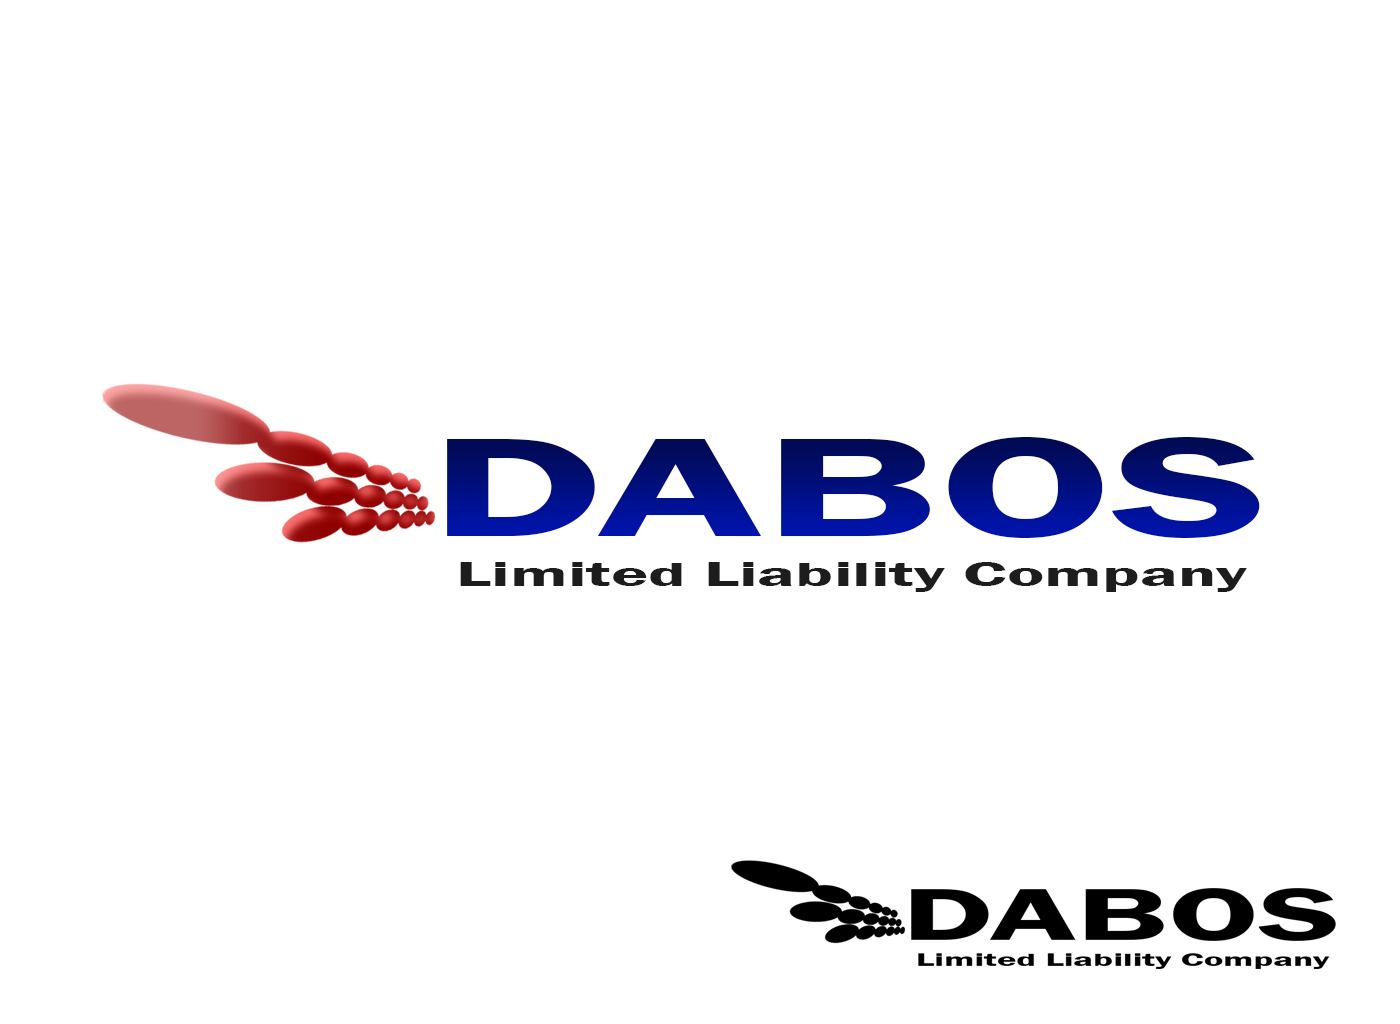 Logo Design by drunkman - Entry No. 148 in the Logo Design Contest Imaginative Logo Design for DABOS, Limited Liability Company.